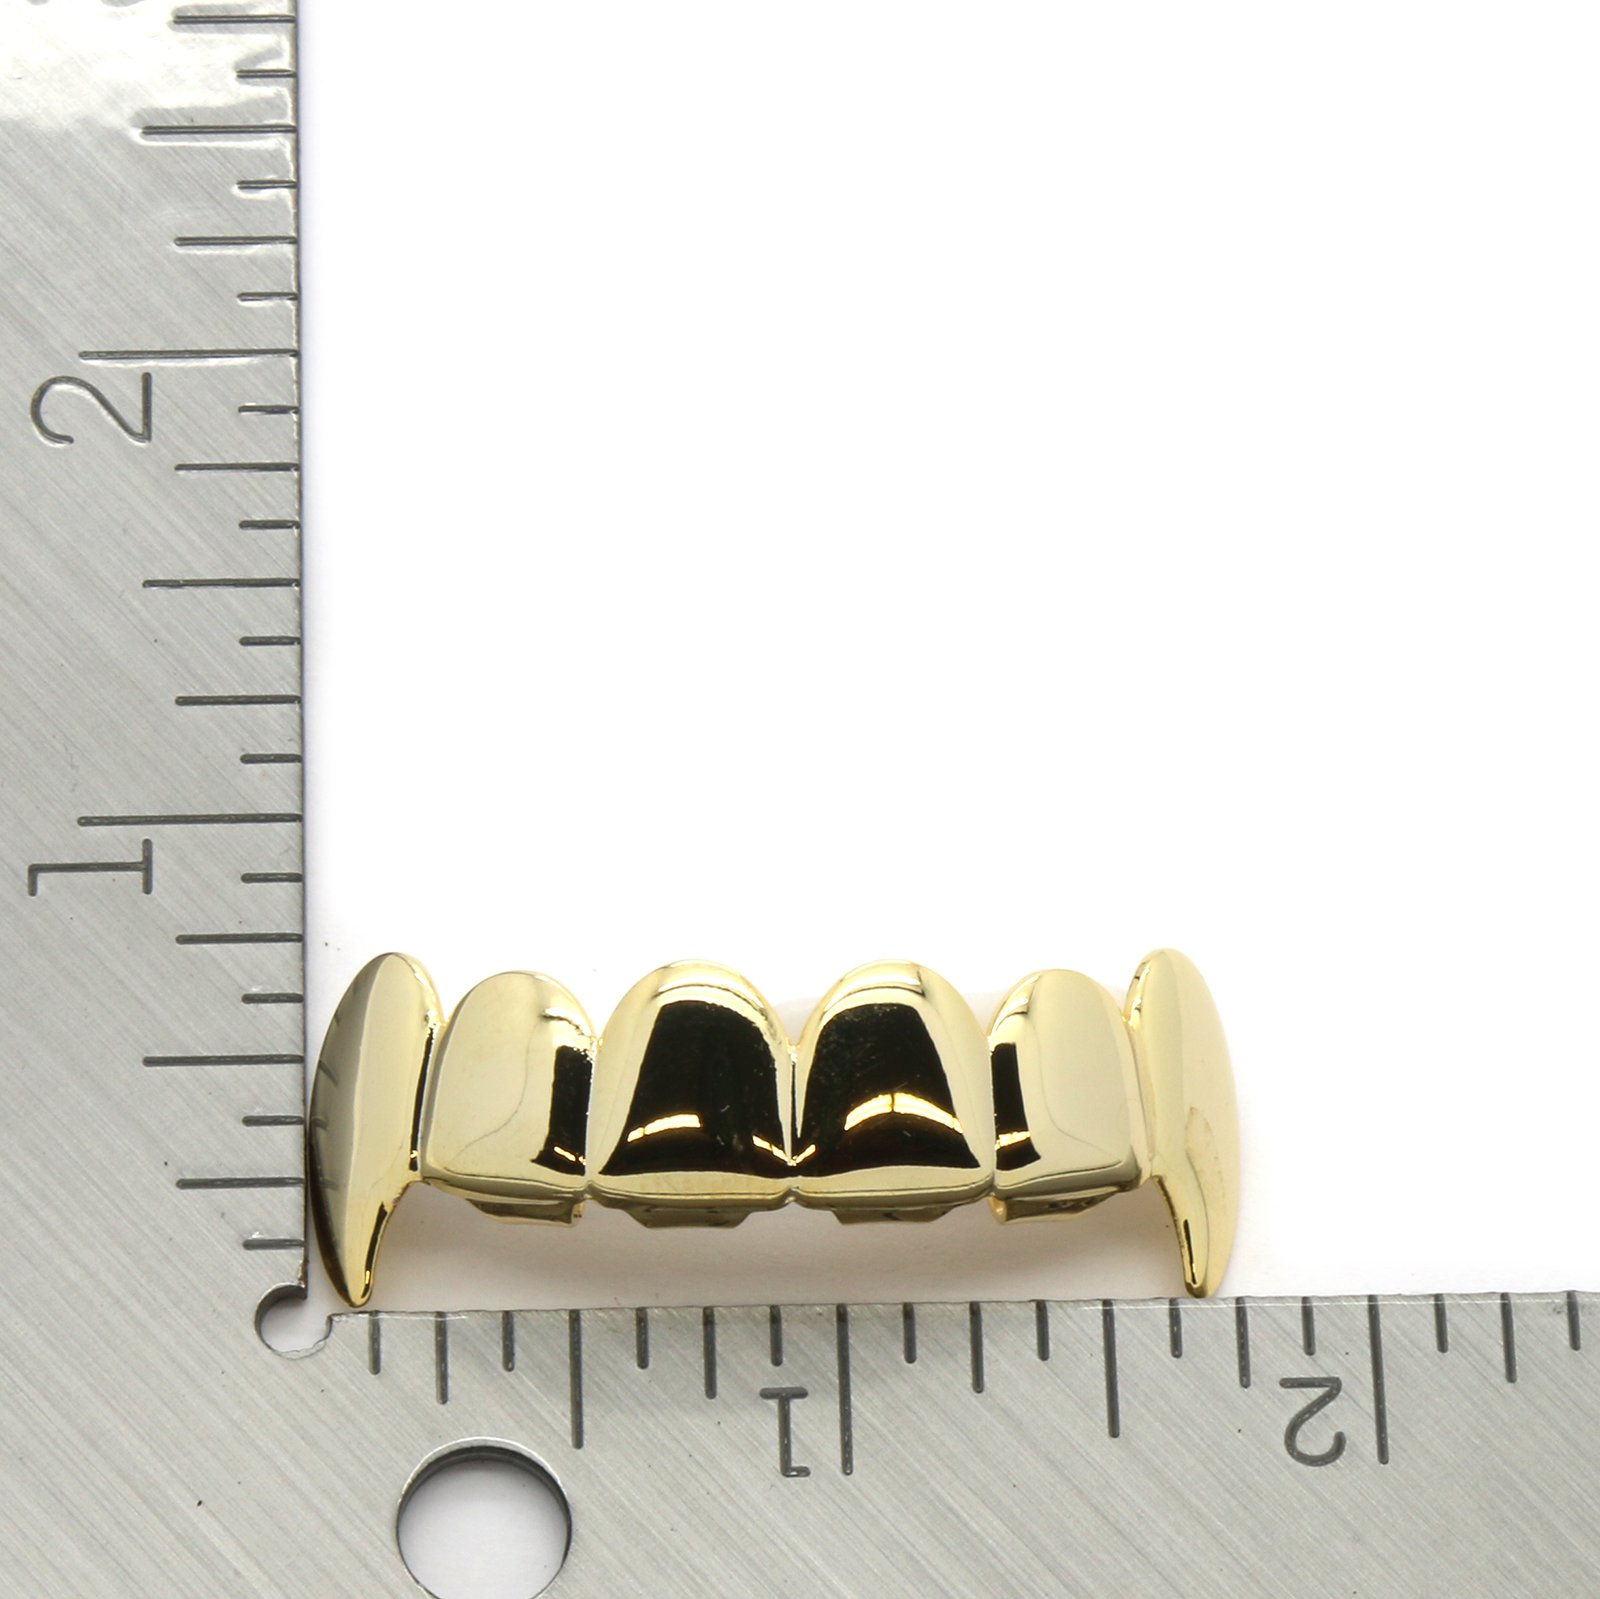 14K Gold Plated Hip Hop Fashion Top Fang Grillz